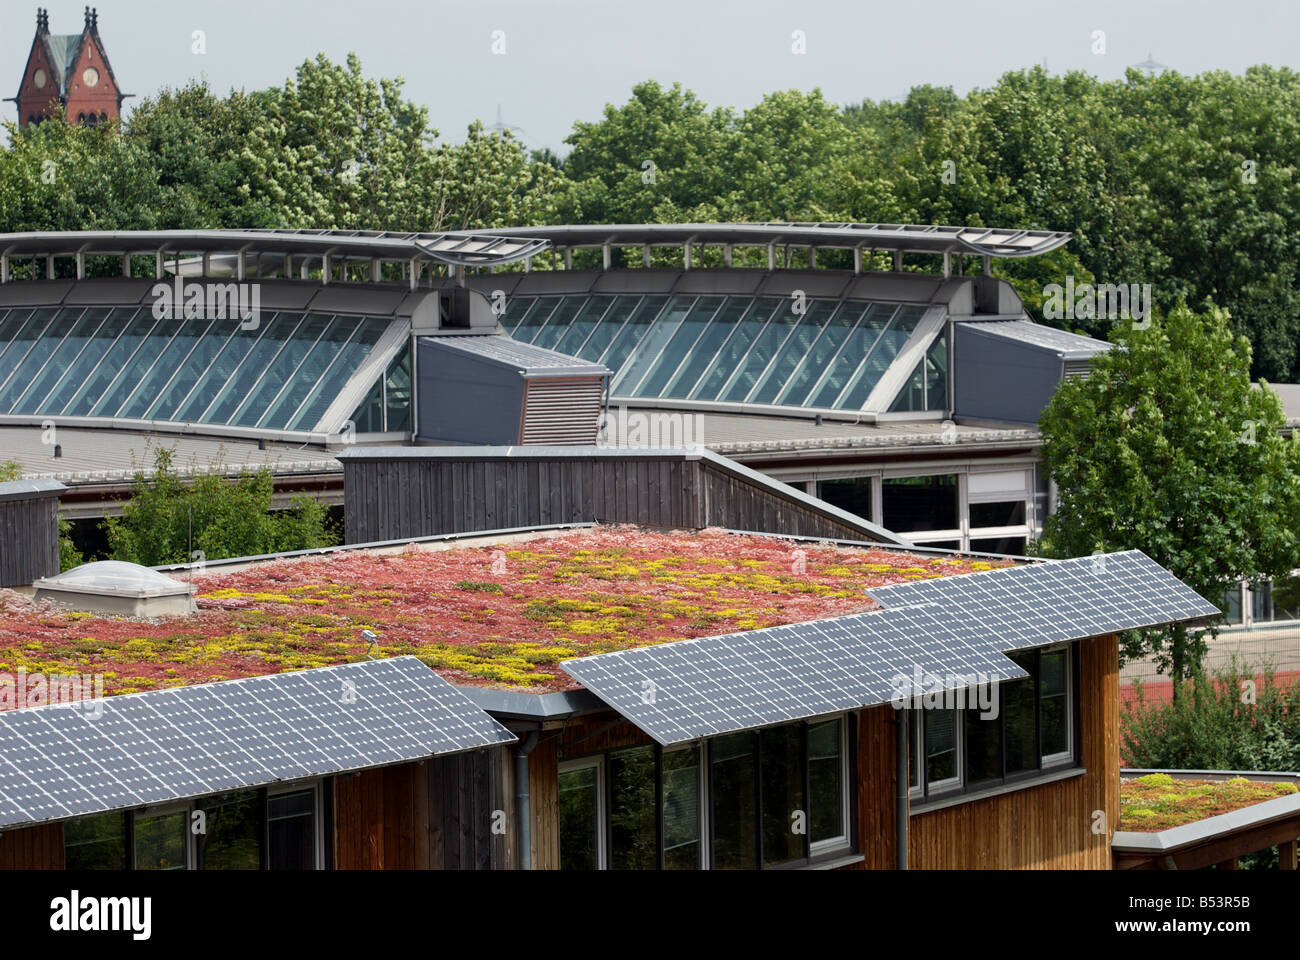 Sedum or 'living roof' on a school classroom in Gelsenkirchen, North Rhine-Westphalia, Germany. Stock Photo